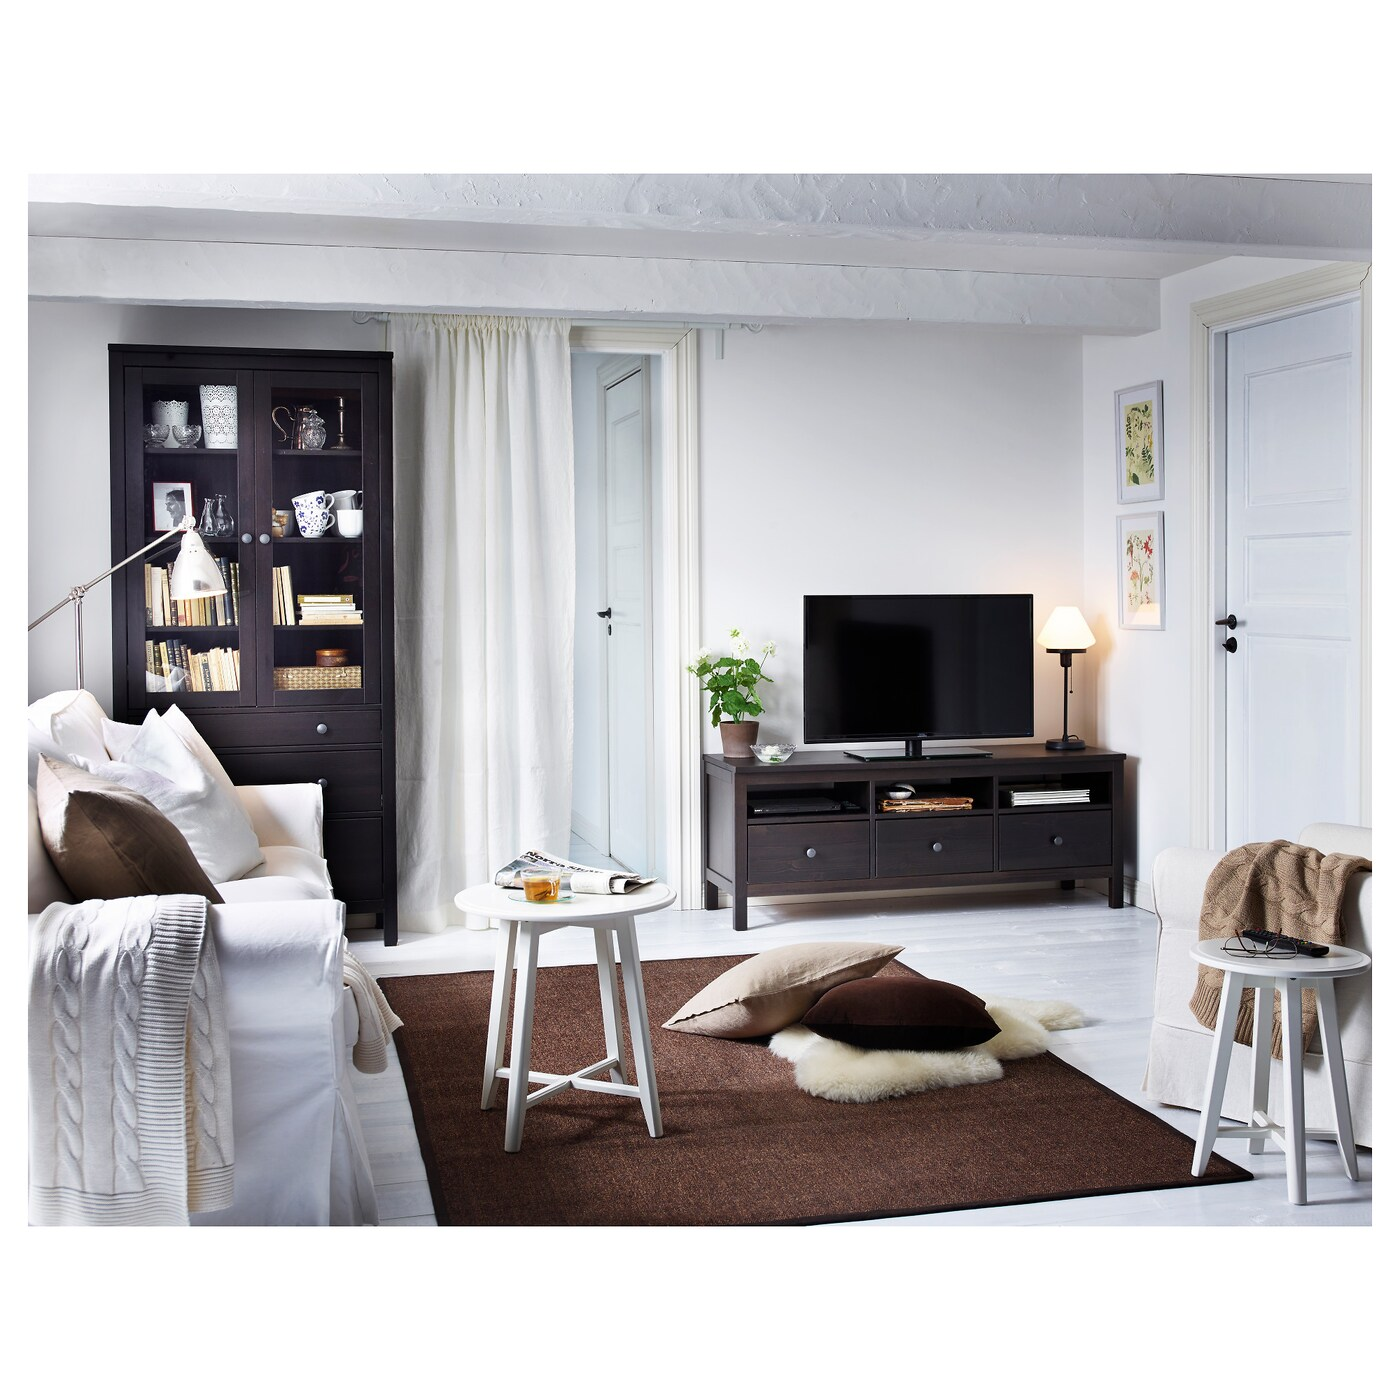 Ikea Hemnes Tv Stand Price : IKEA HEMNES TV bench Solid wood has a natural feel Open compartments